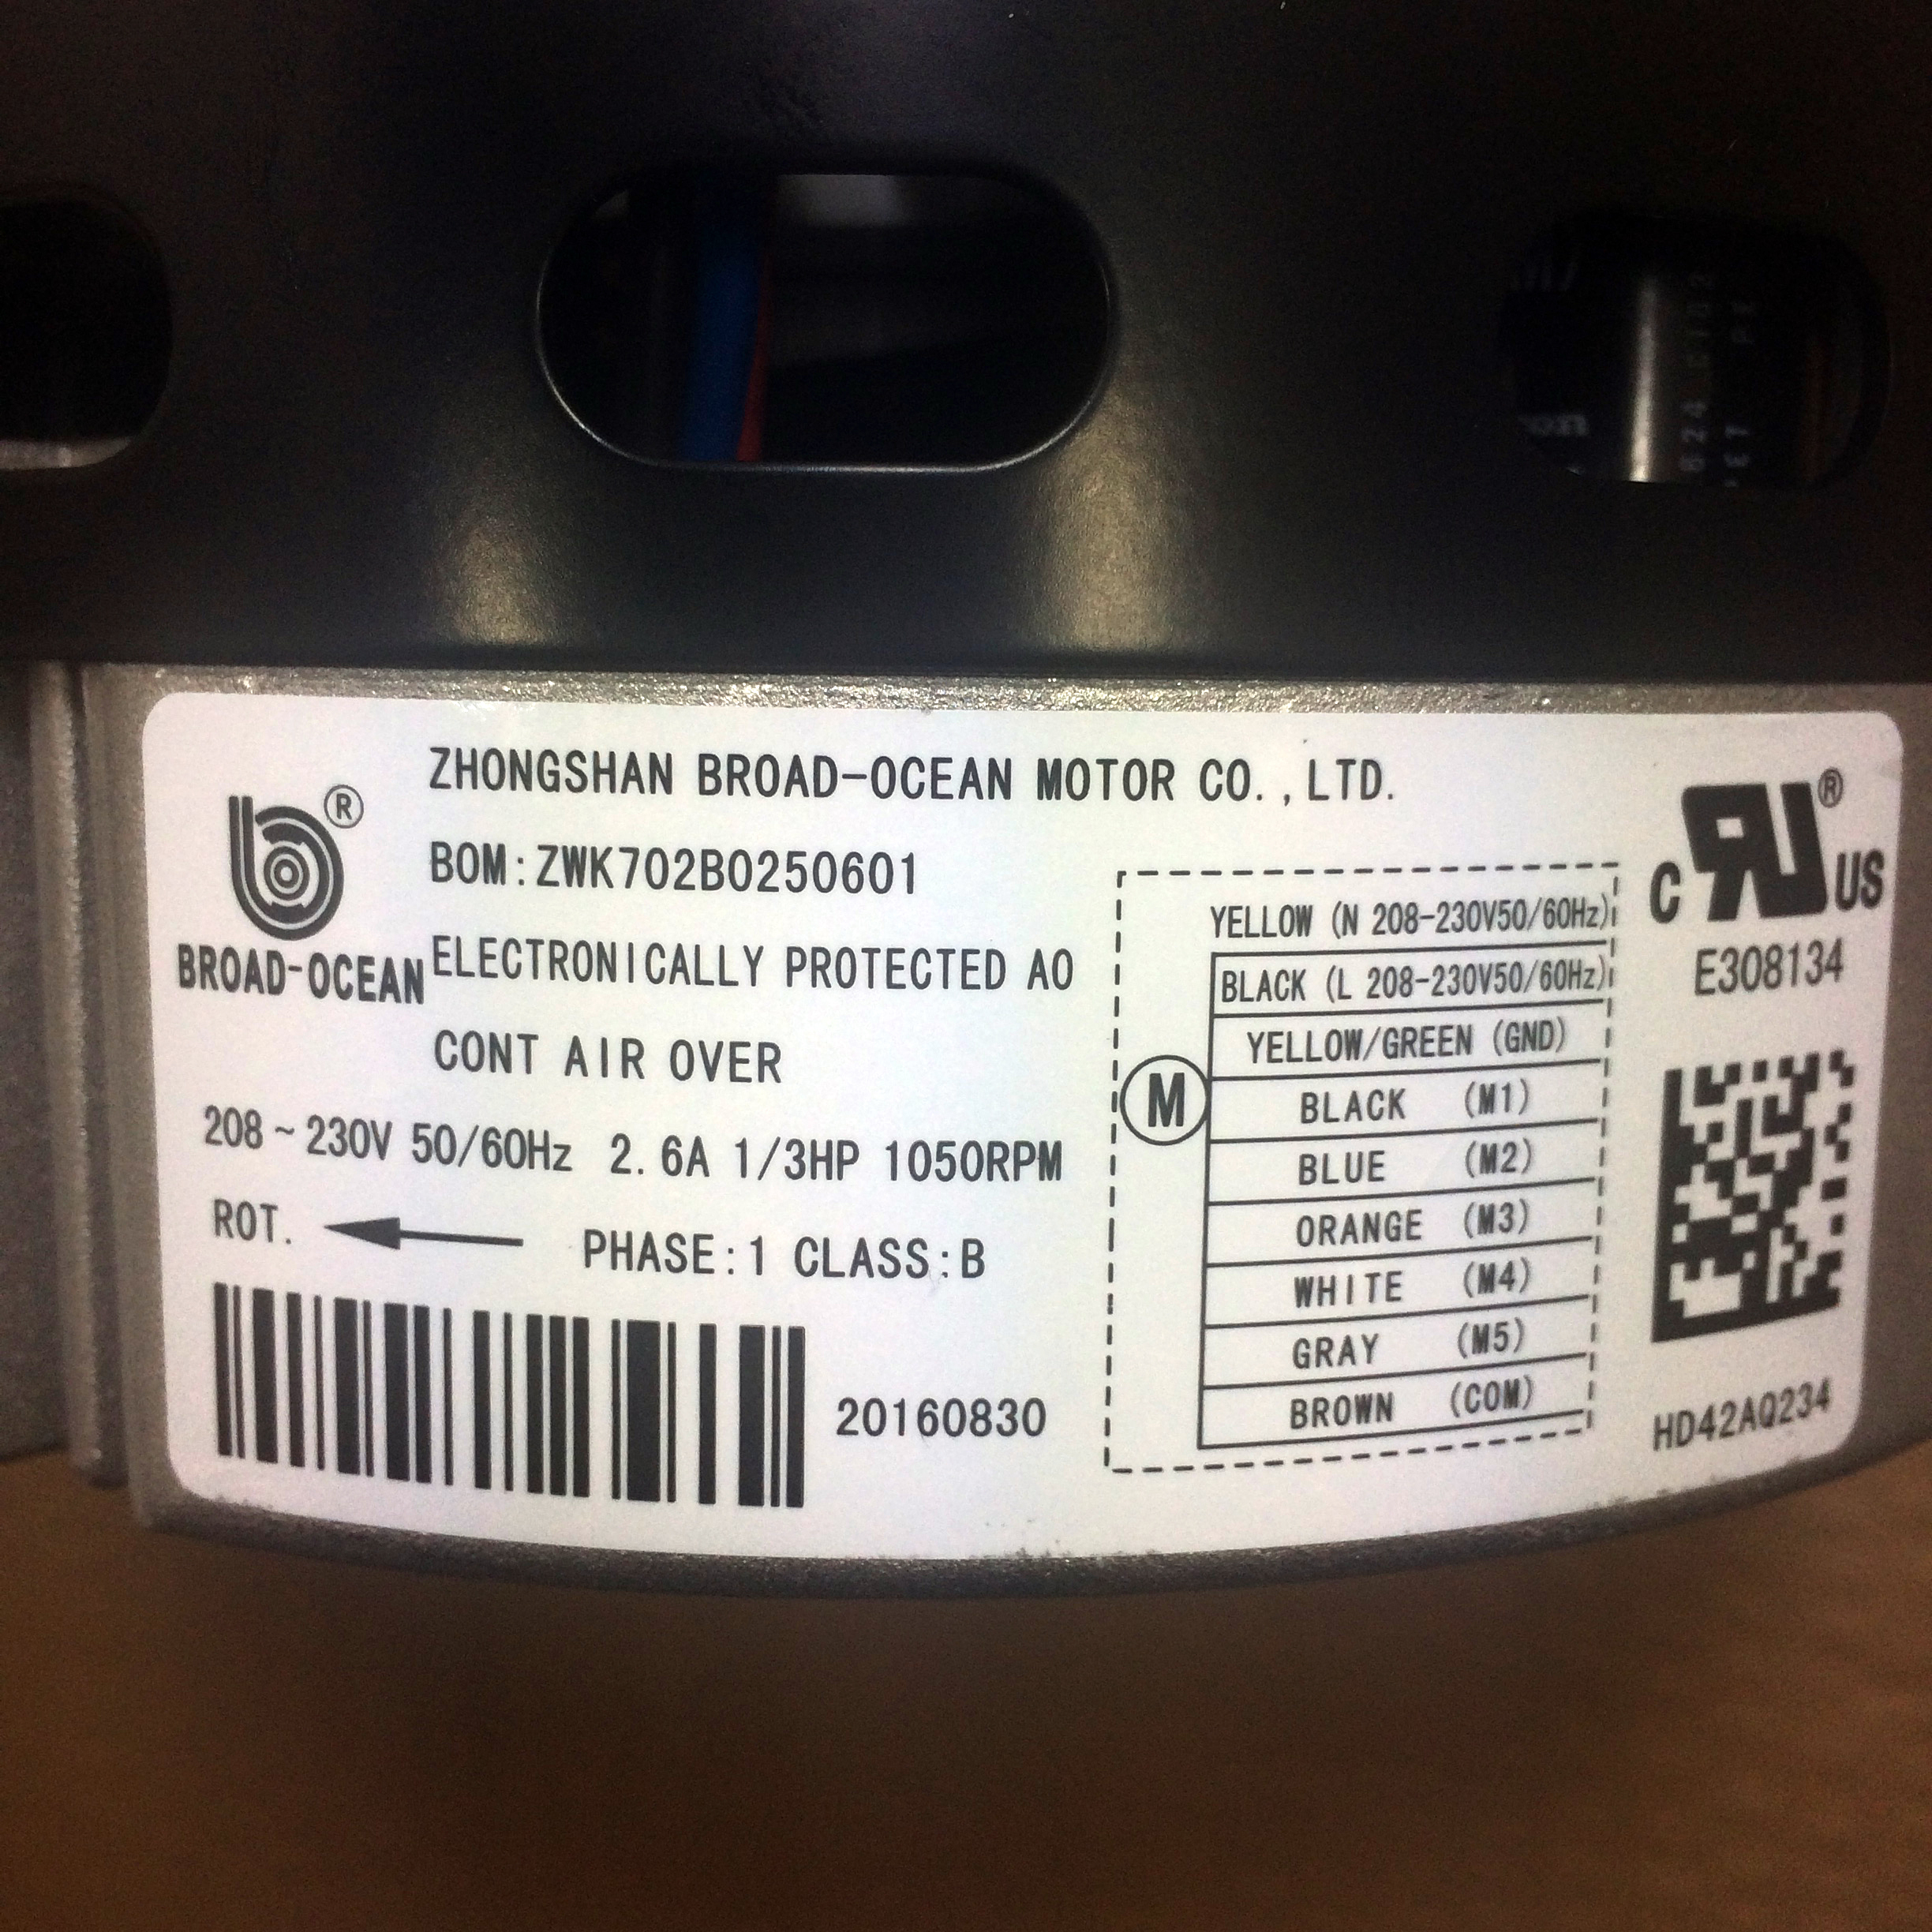 Carrier Blower Motor HD44AR242